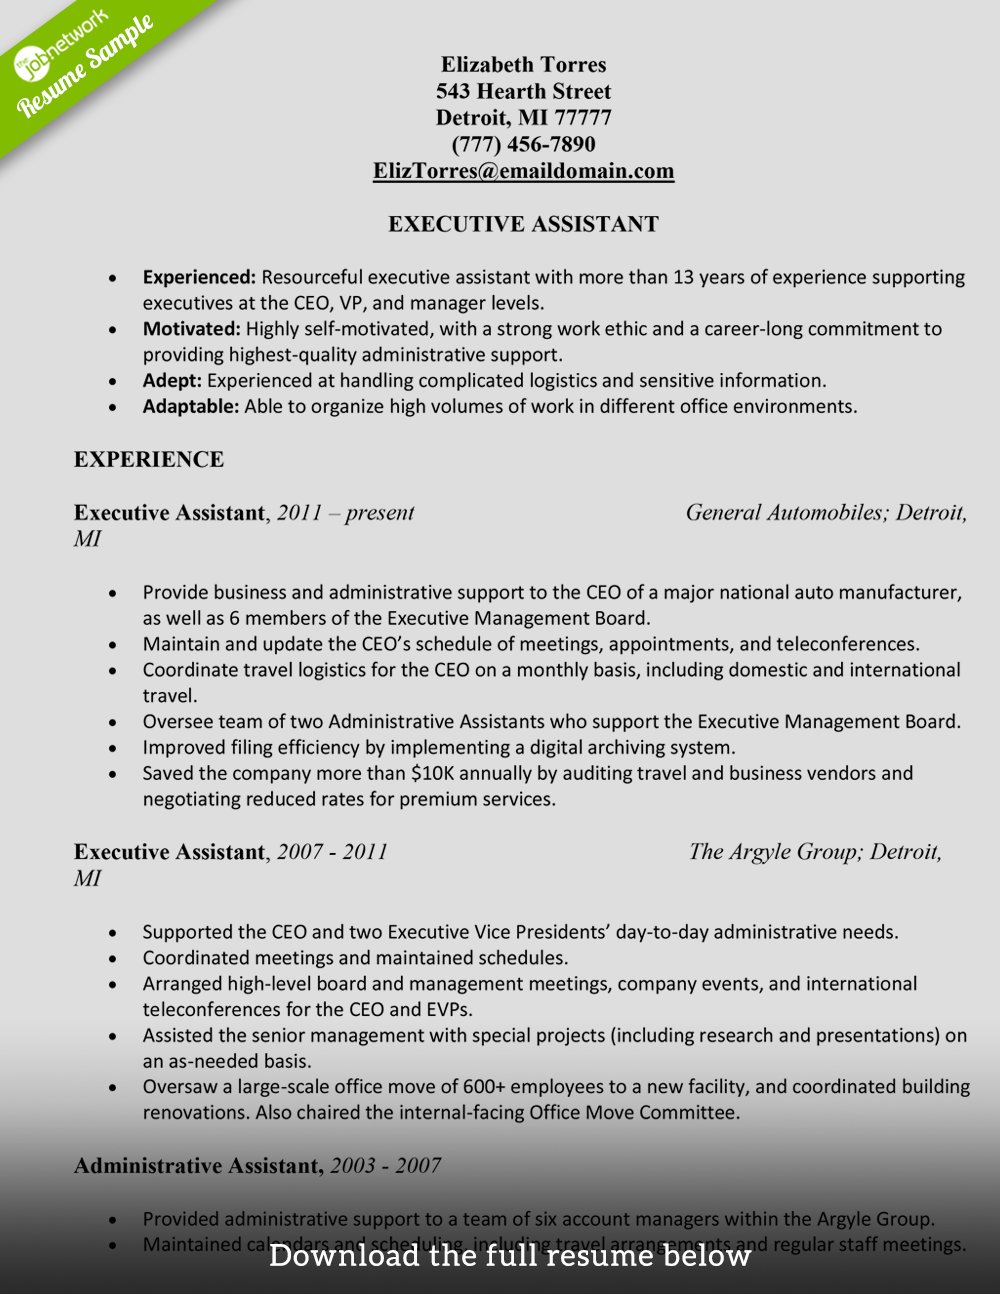 administrative assistant resume elizabeth torres - Resume Of Office Assistant